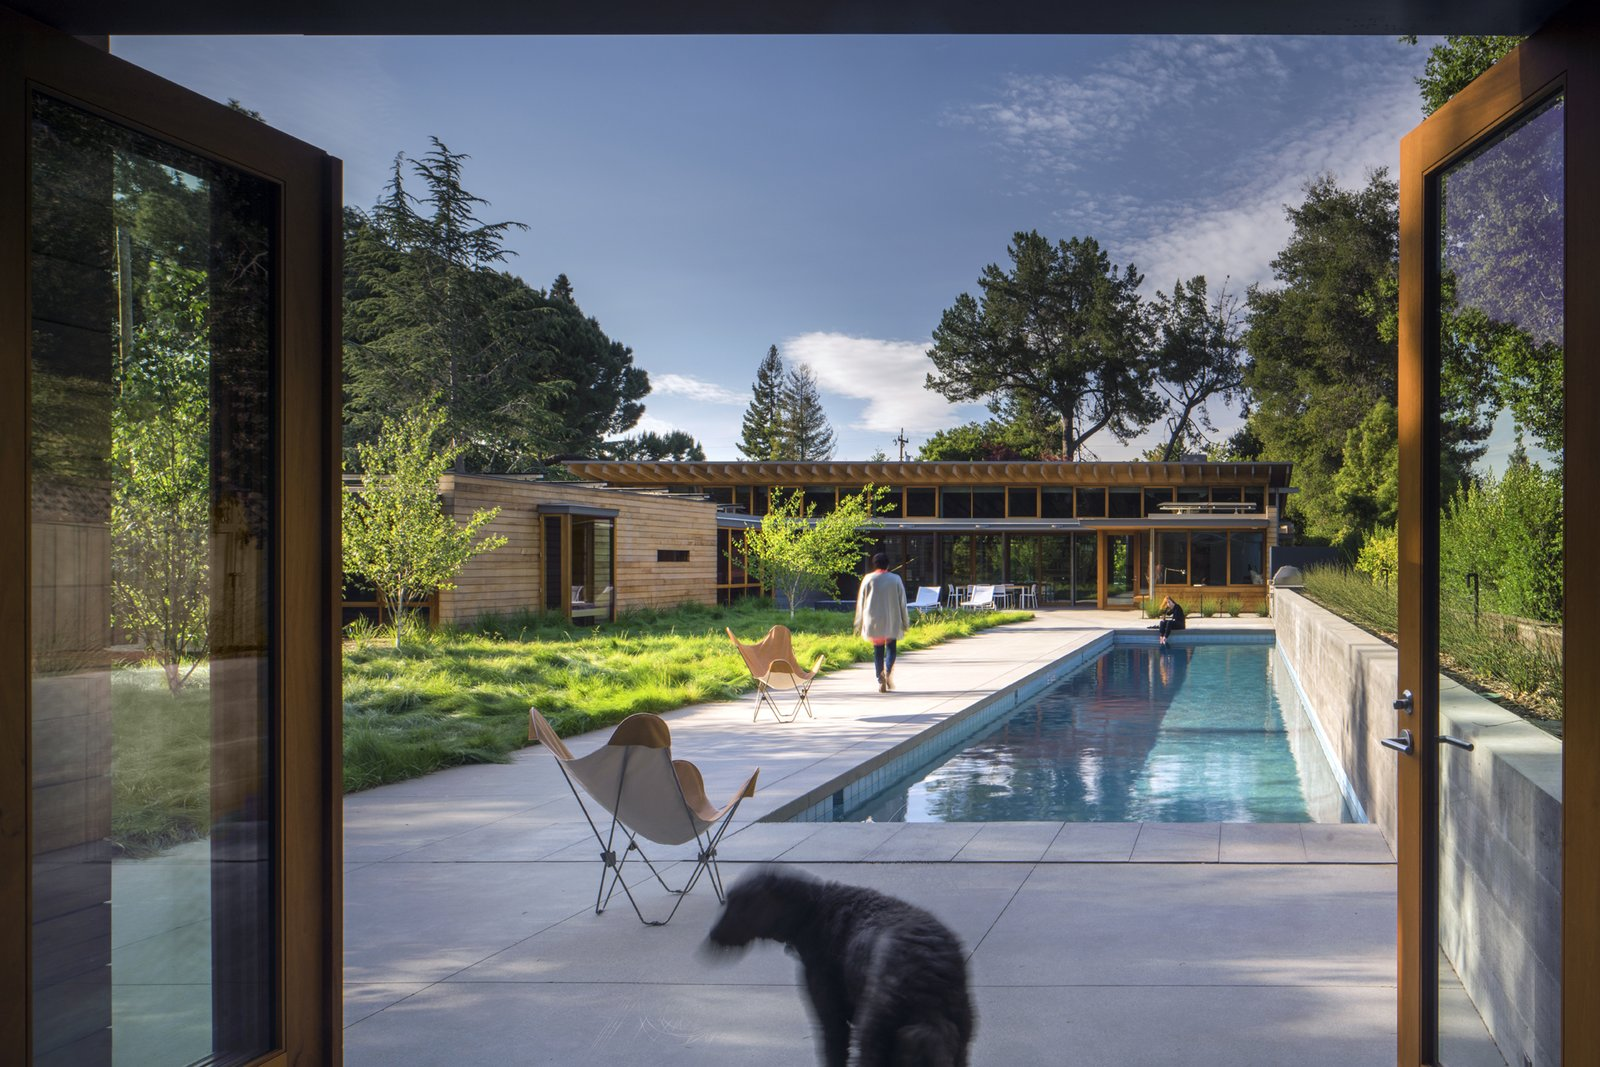 Articles about accessible modern prefab northern california on Dwell.com